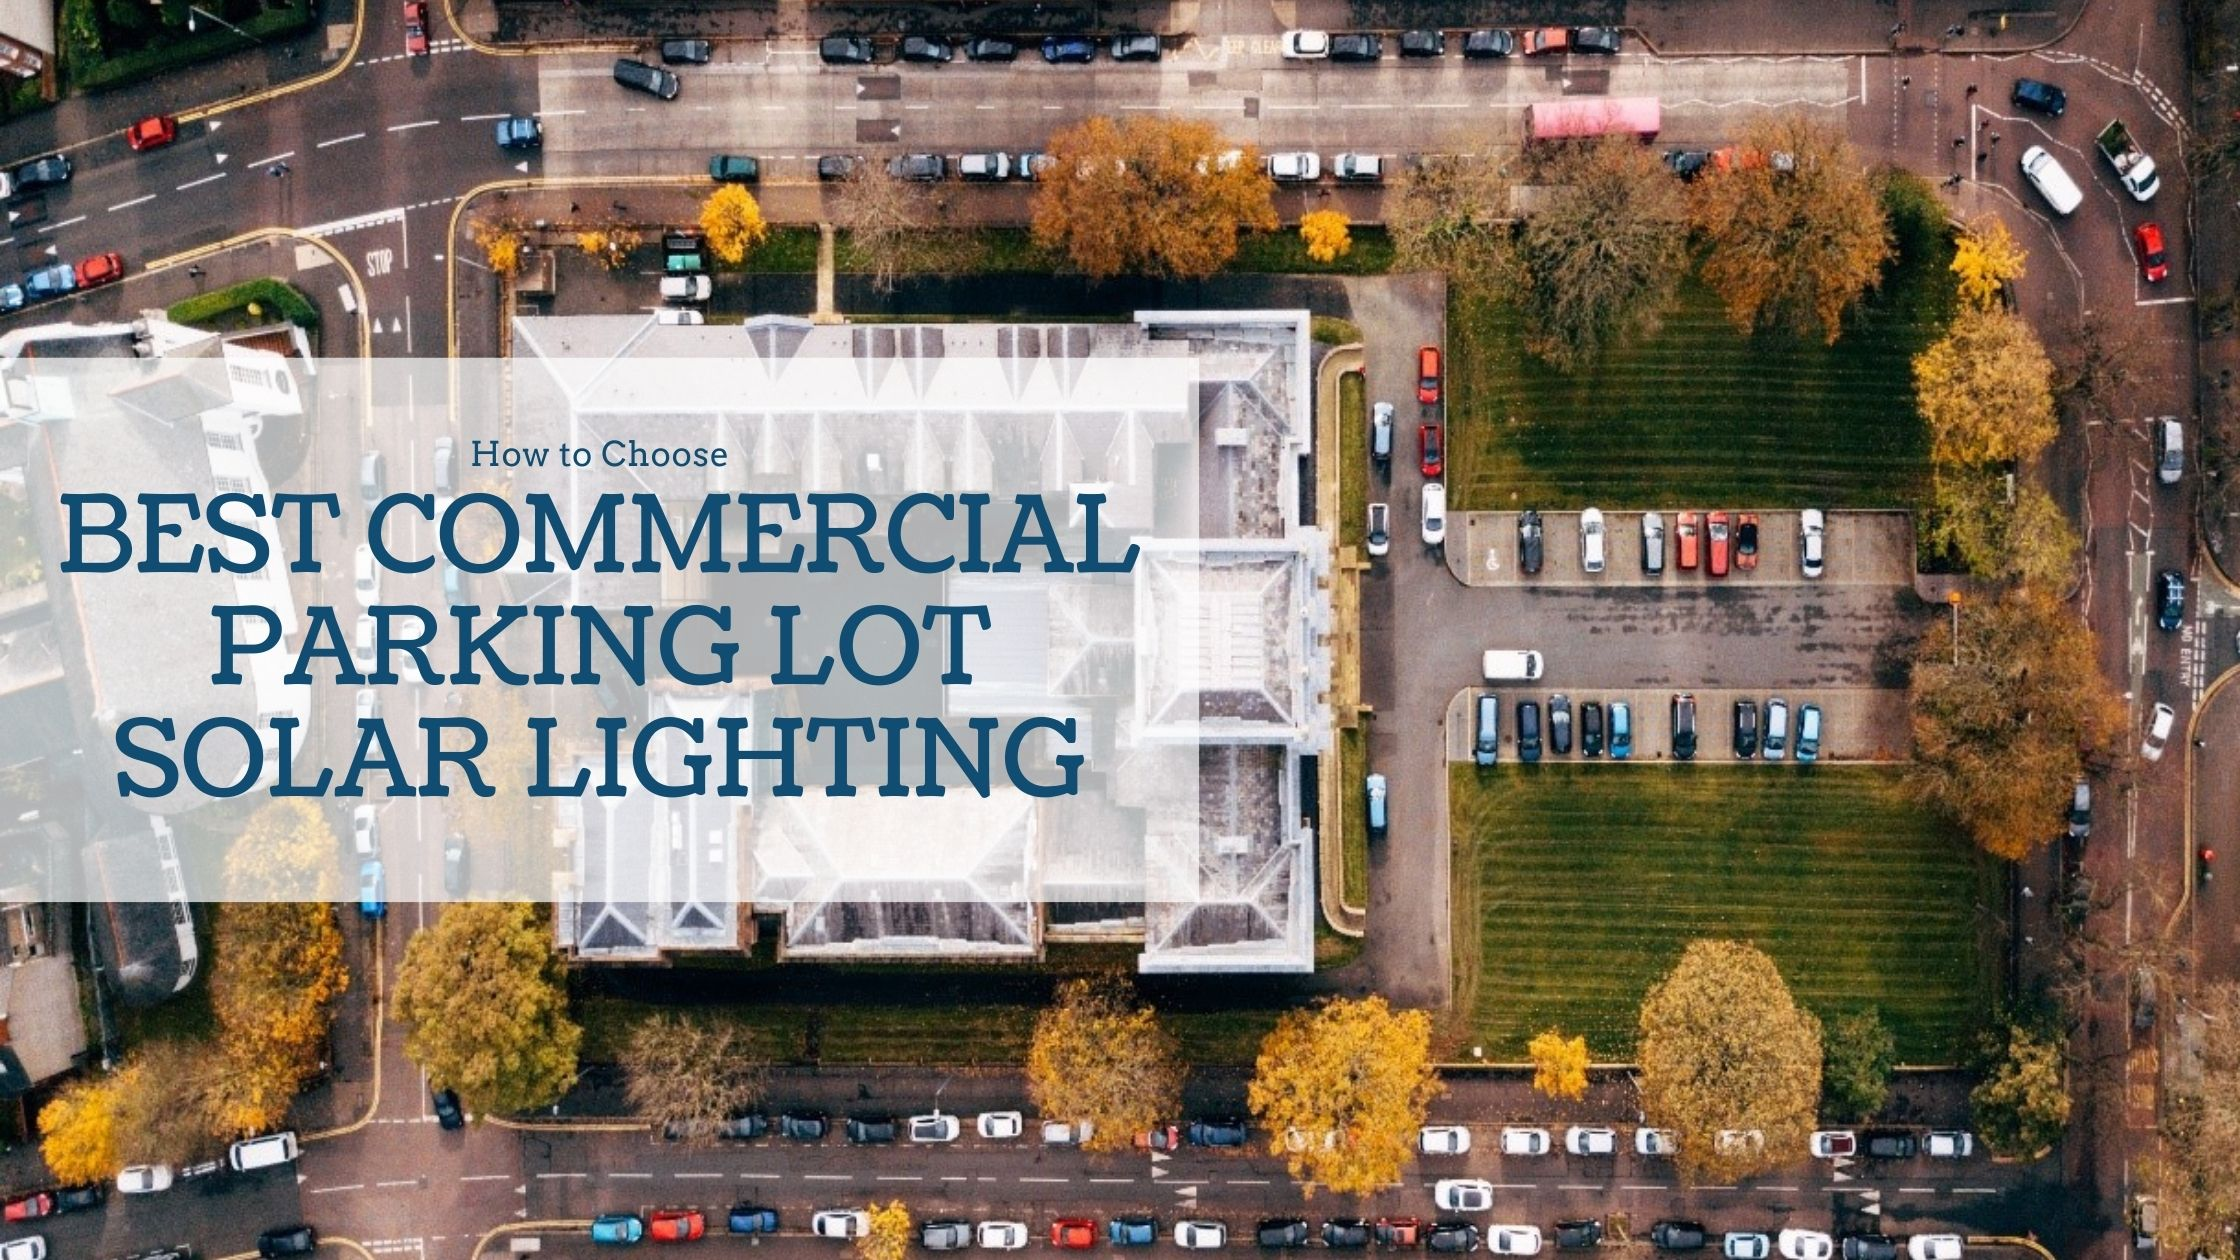 How to Choose the Best Commercial Parking Lot Solar Lighting